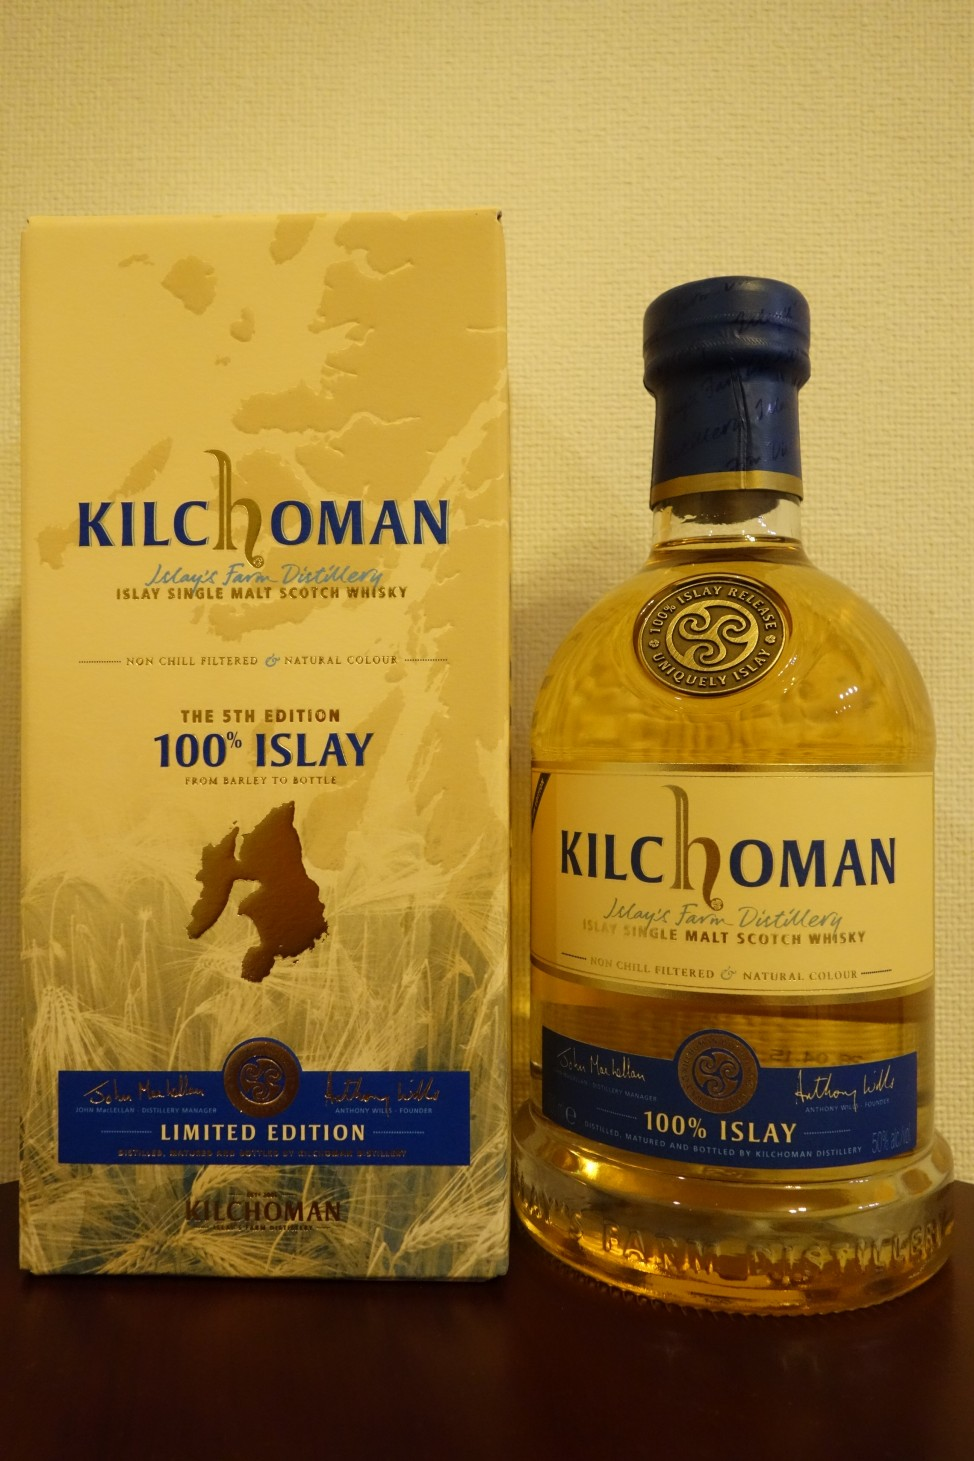 キルホーマン KILCHOMAN OB 100% ISLAY 2015 bottling 5TH EDITION (2)